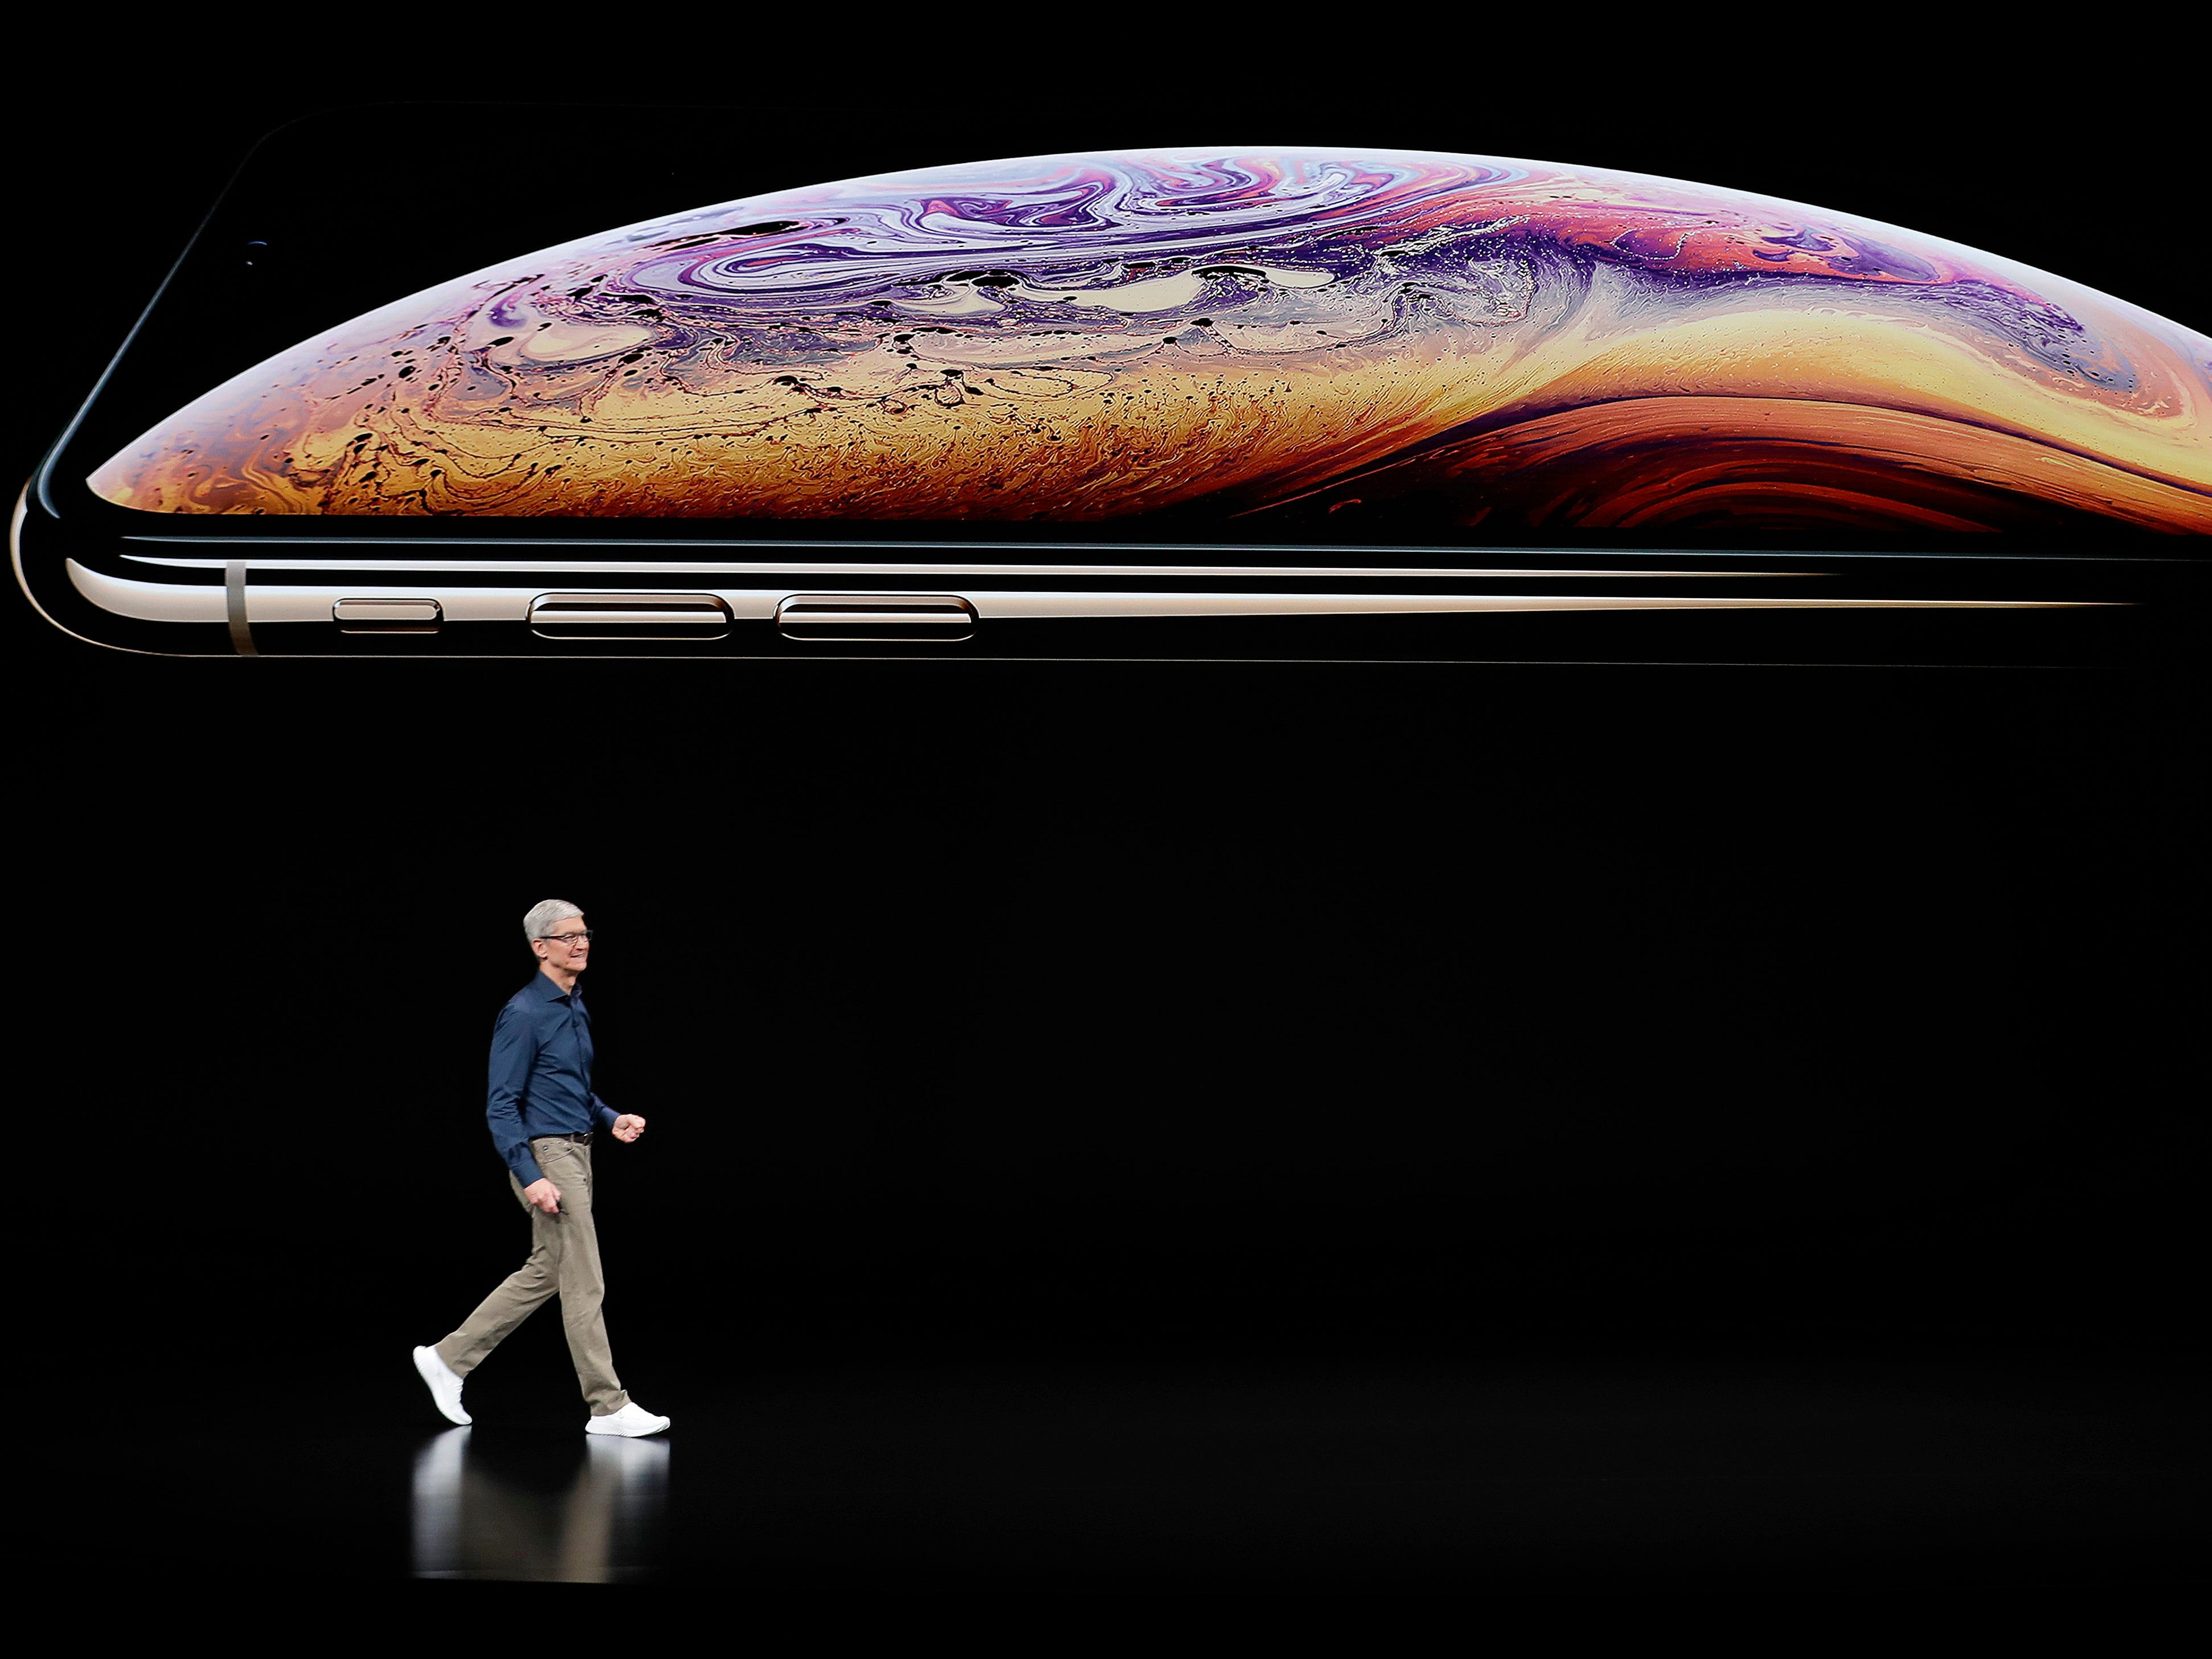 Apple CEO Tim Cook speaks about the Apple iPhone XS at the Steve Jobs Theater during an event to announce new Apple products Wednesday, Sept. 12, 2018, in Cupertino, Calif.